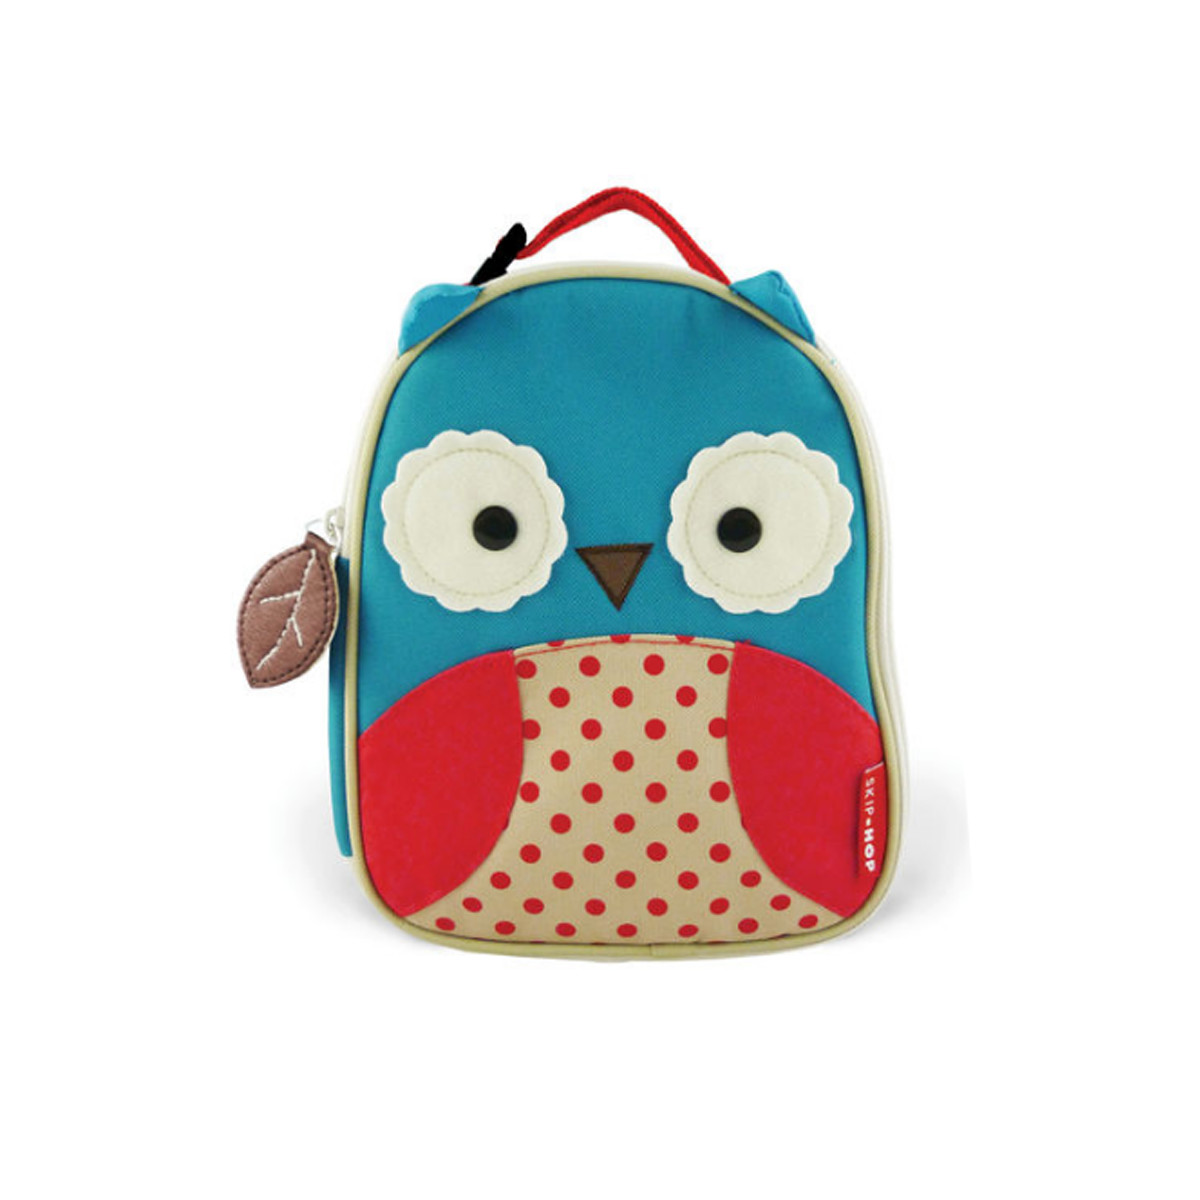 Skiphop lunchbox with owl design